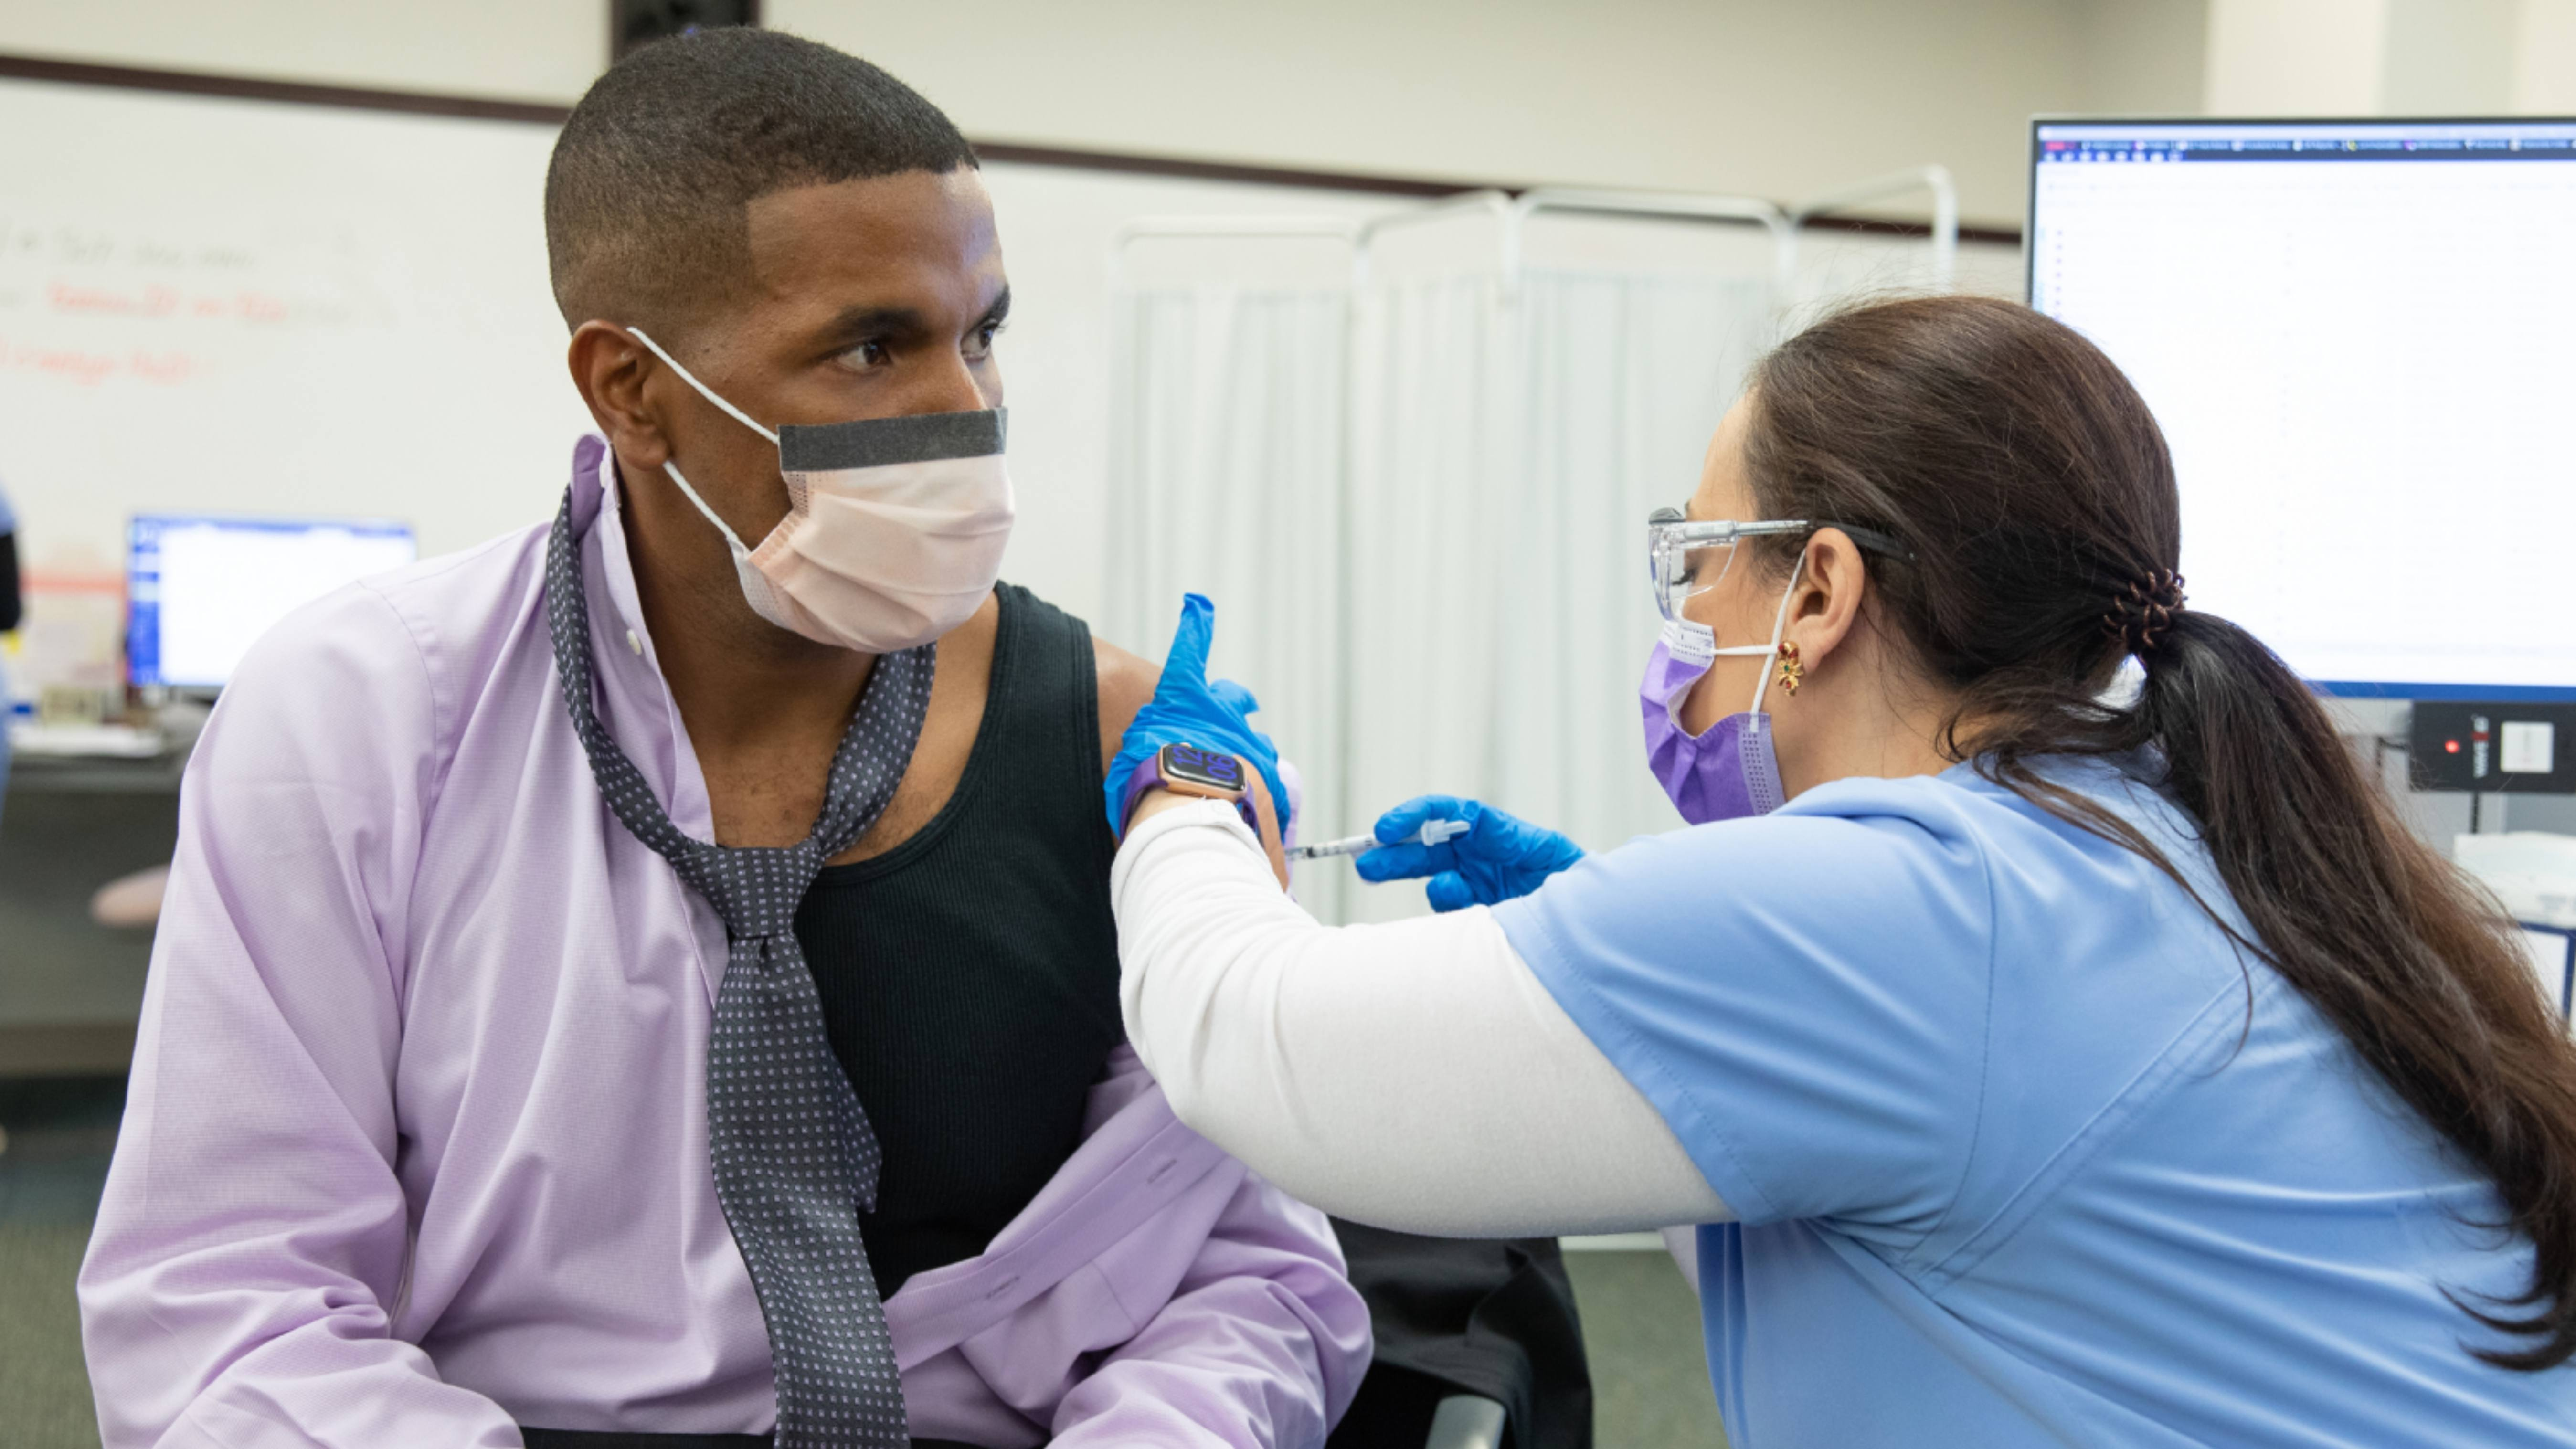 a Mayo Clinic employee in Florida, a Black man, wearing a mask and receiving the COVID-19 vaccine